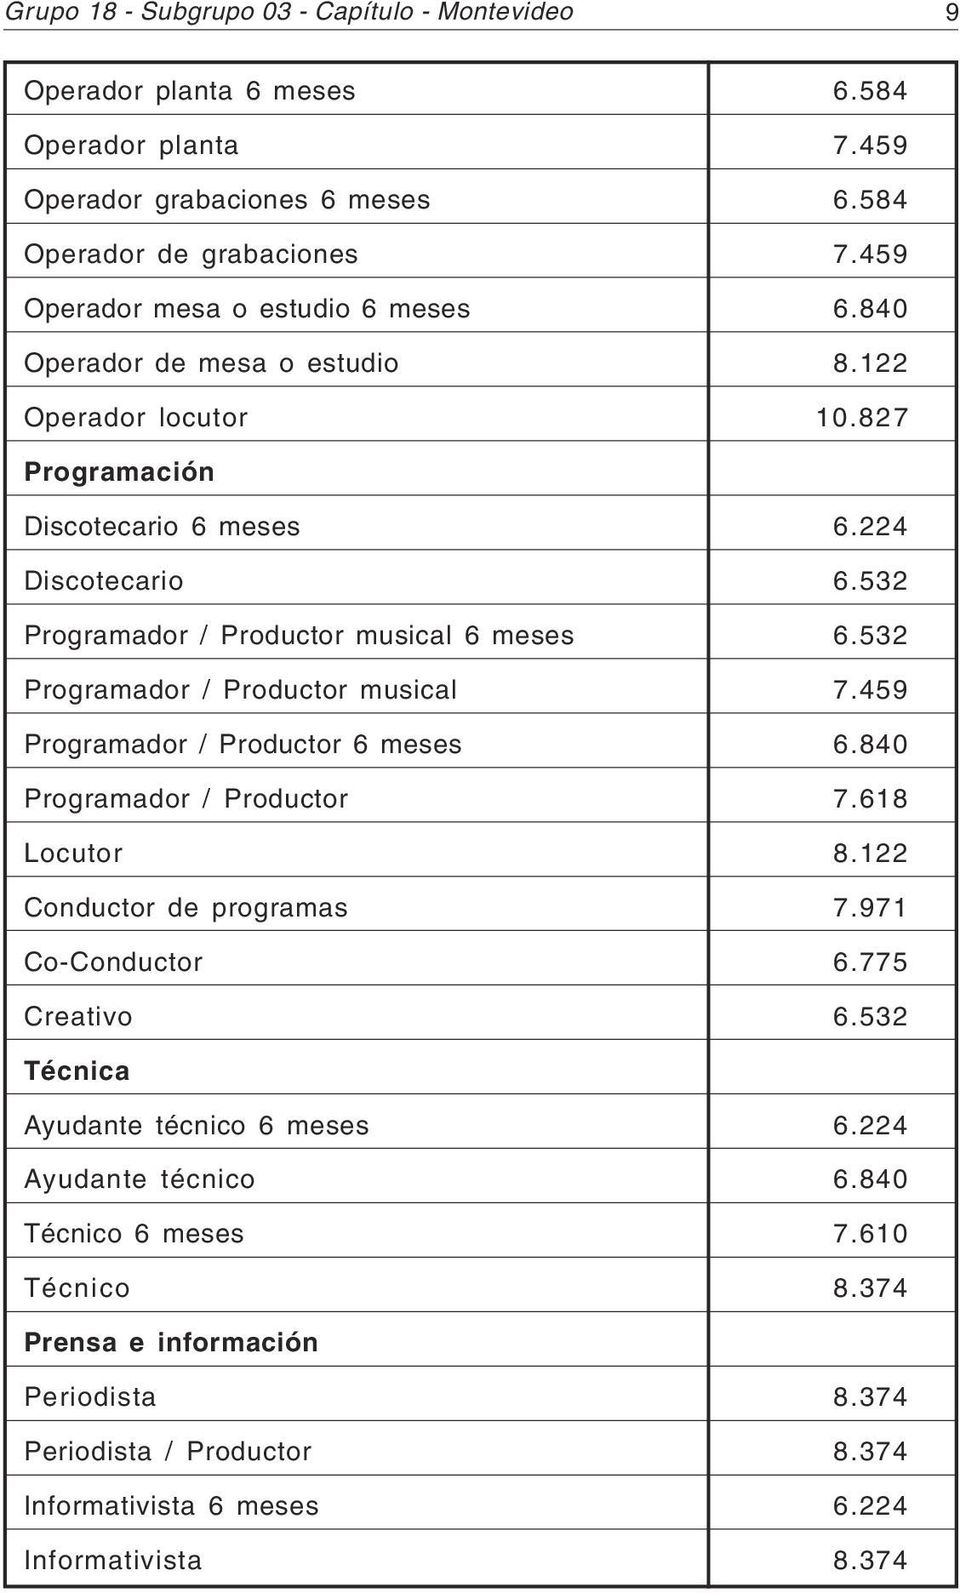 532 Programador / Productor musical 6 meses 6.532 Programador / Productor musical 7.459 Programador / Productor 6 meses 6.840 Programador / Productor 7.618 Locutor 8.